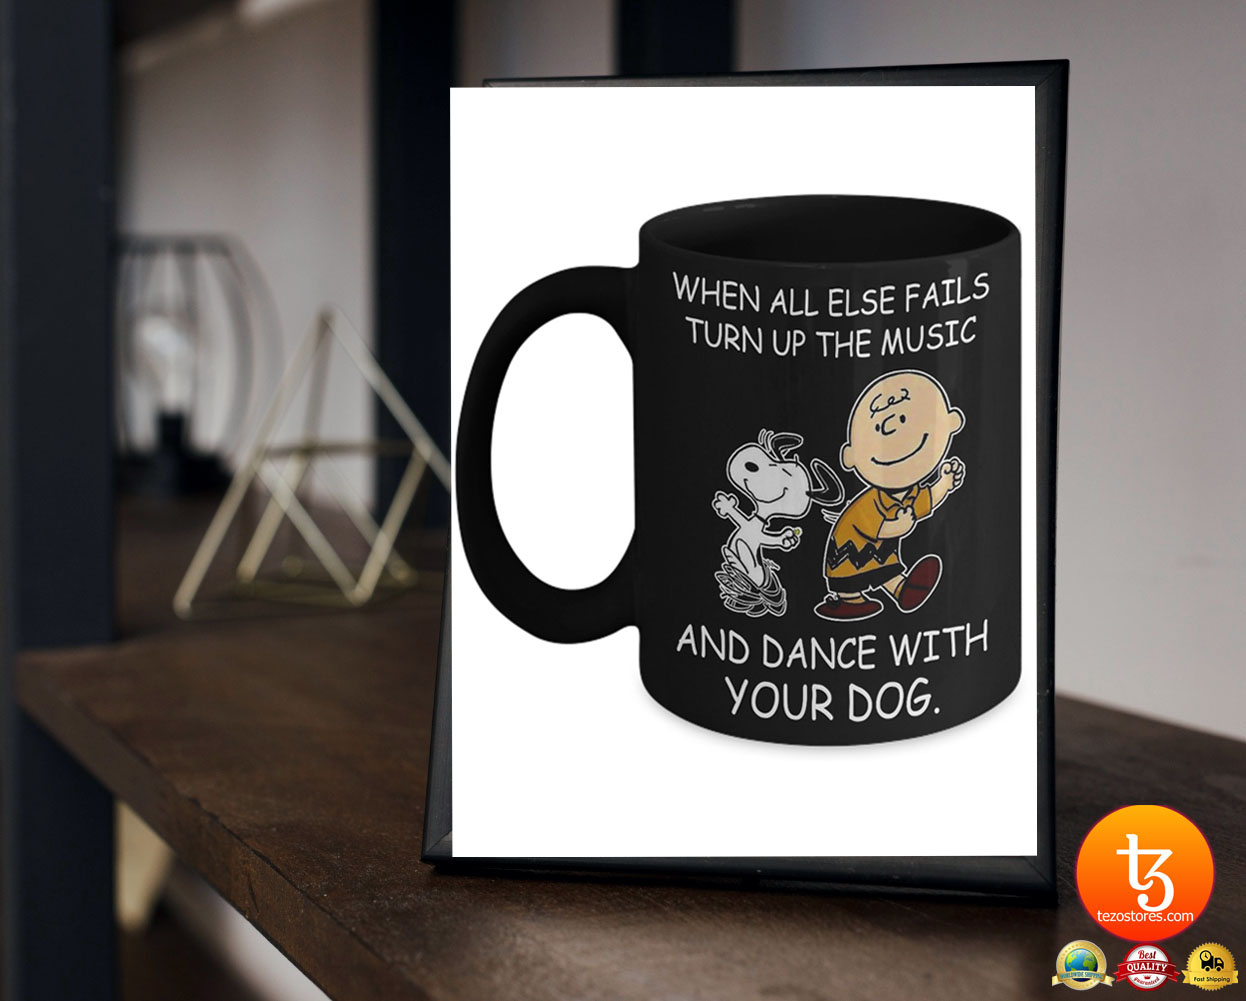 Snoopy and Charlie Brown When all else fails turn up the music and dance with your dog mug